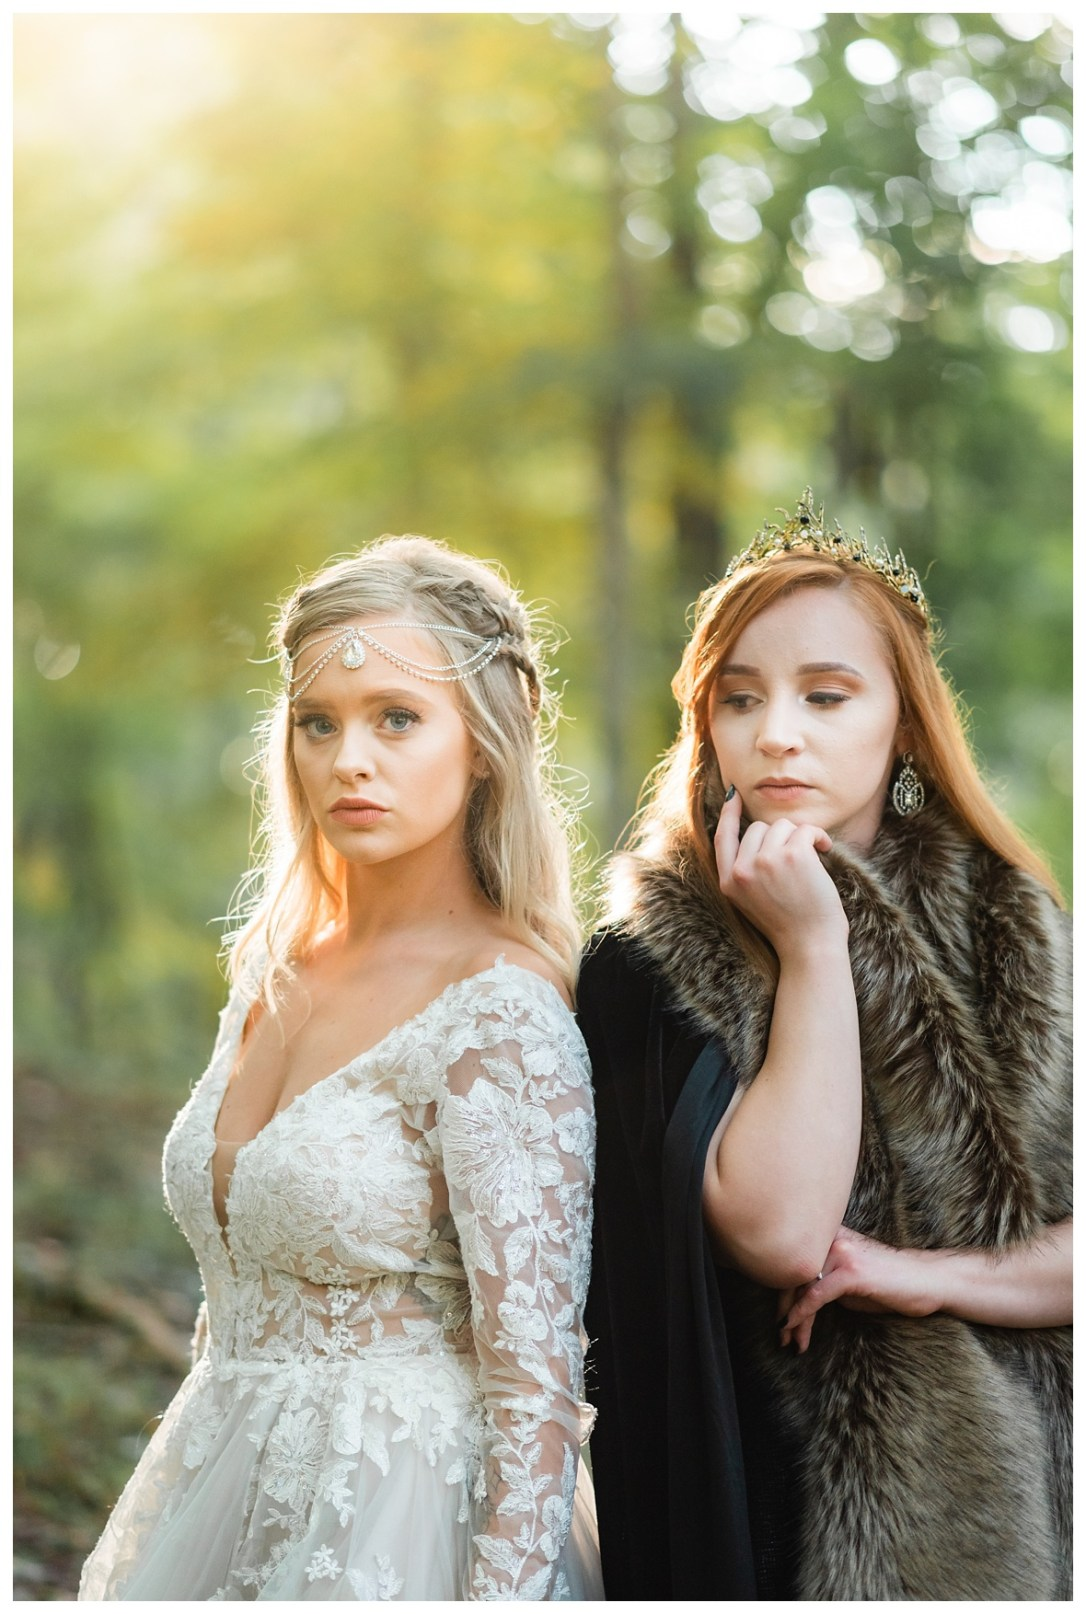 Daenarys and Sansa cosplay